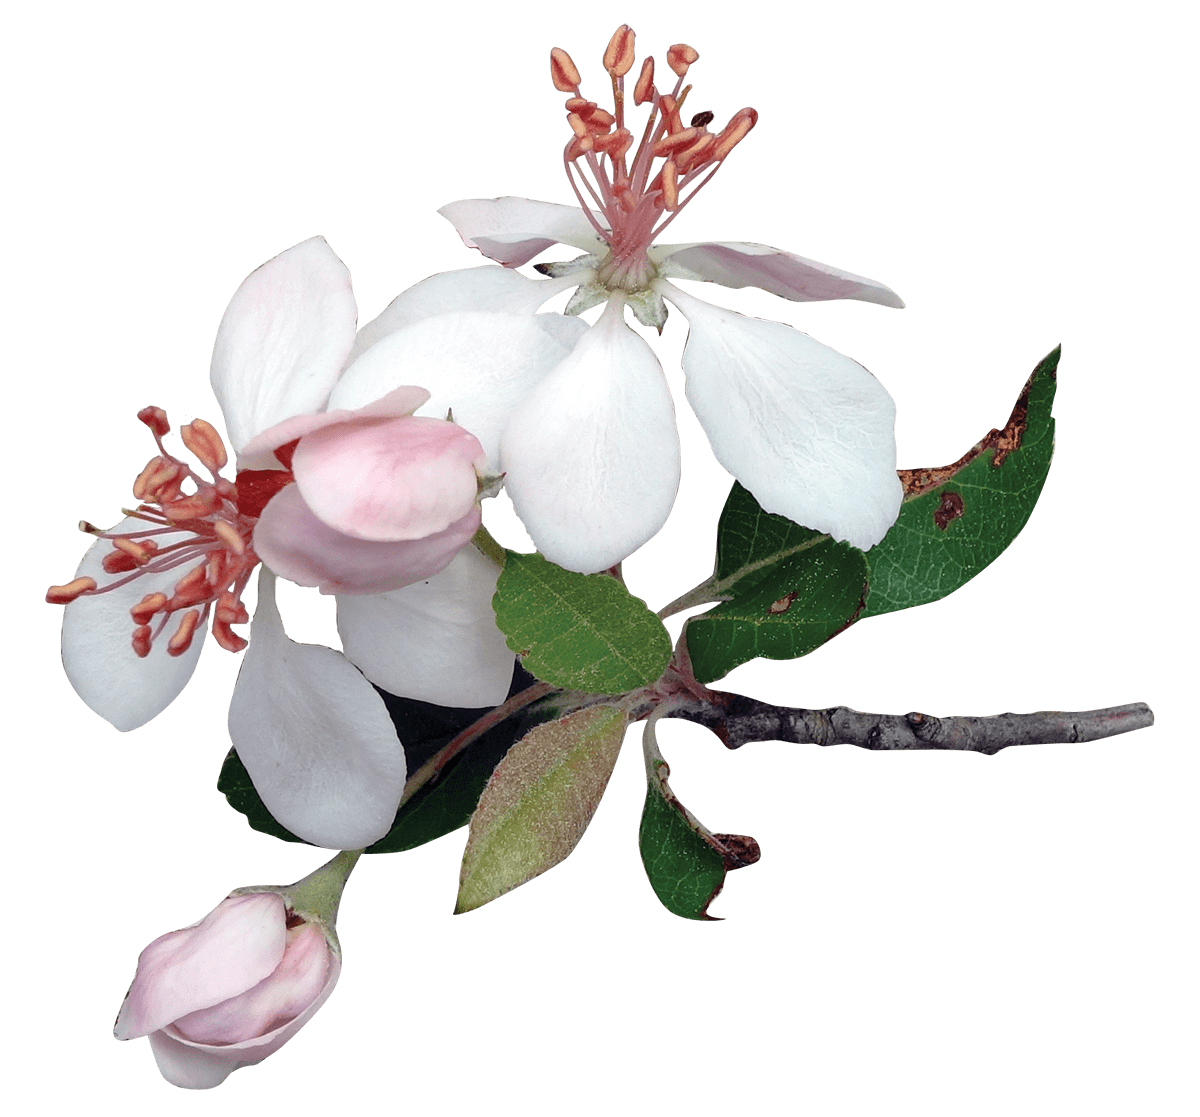 Various flowers transparent images. Magnolia flower png